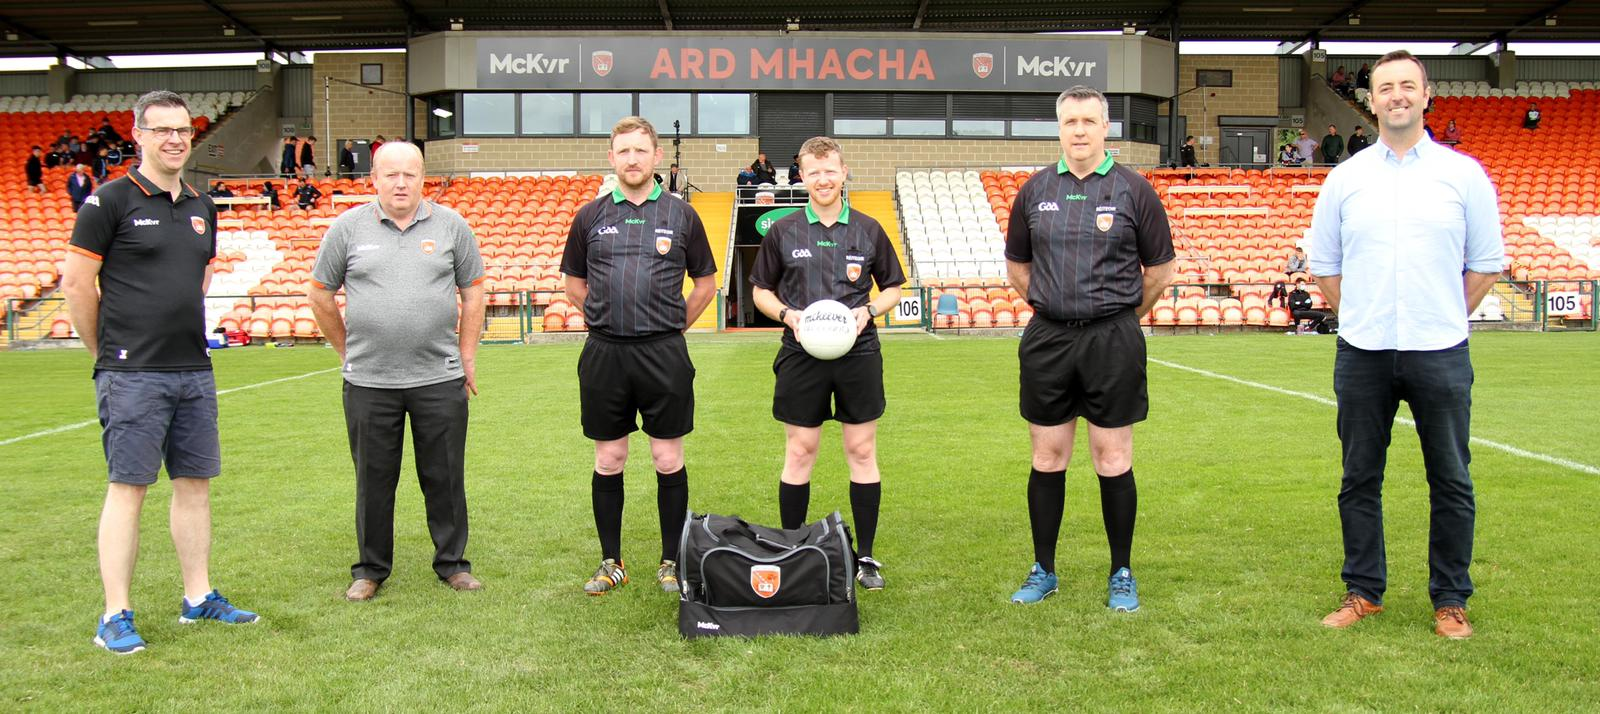 New kit launched for Armagh GAA referees